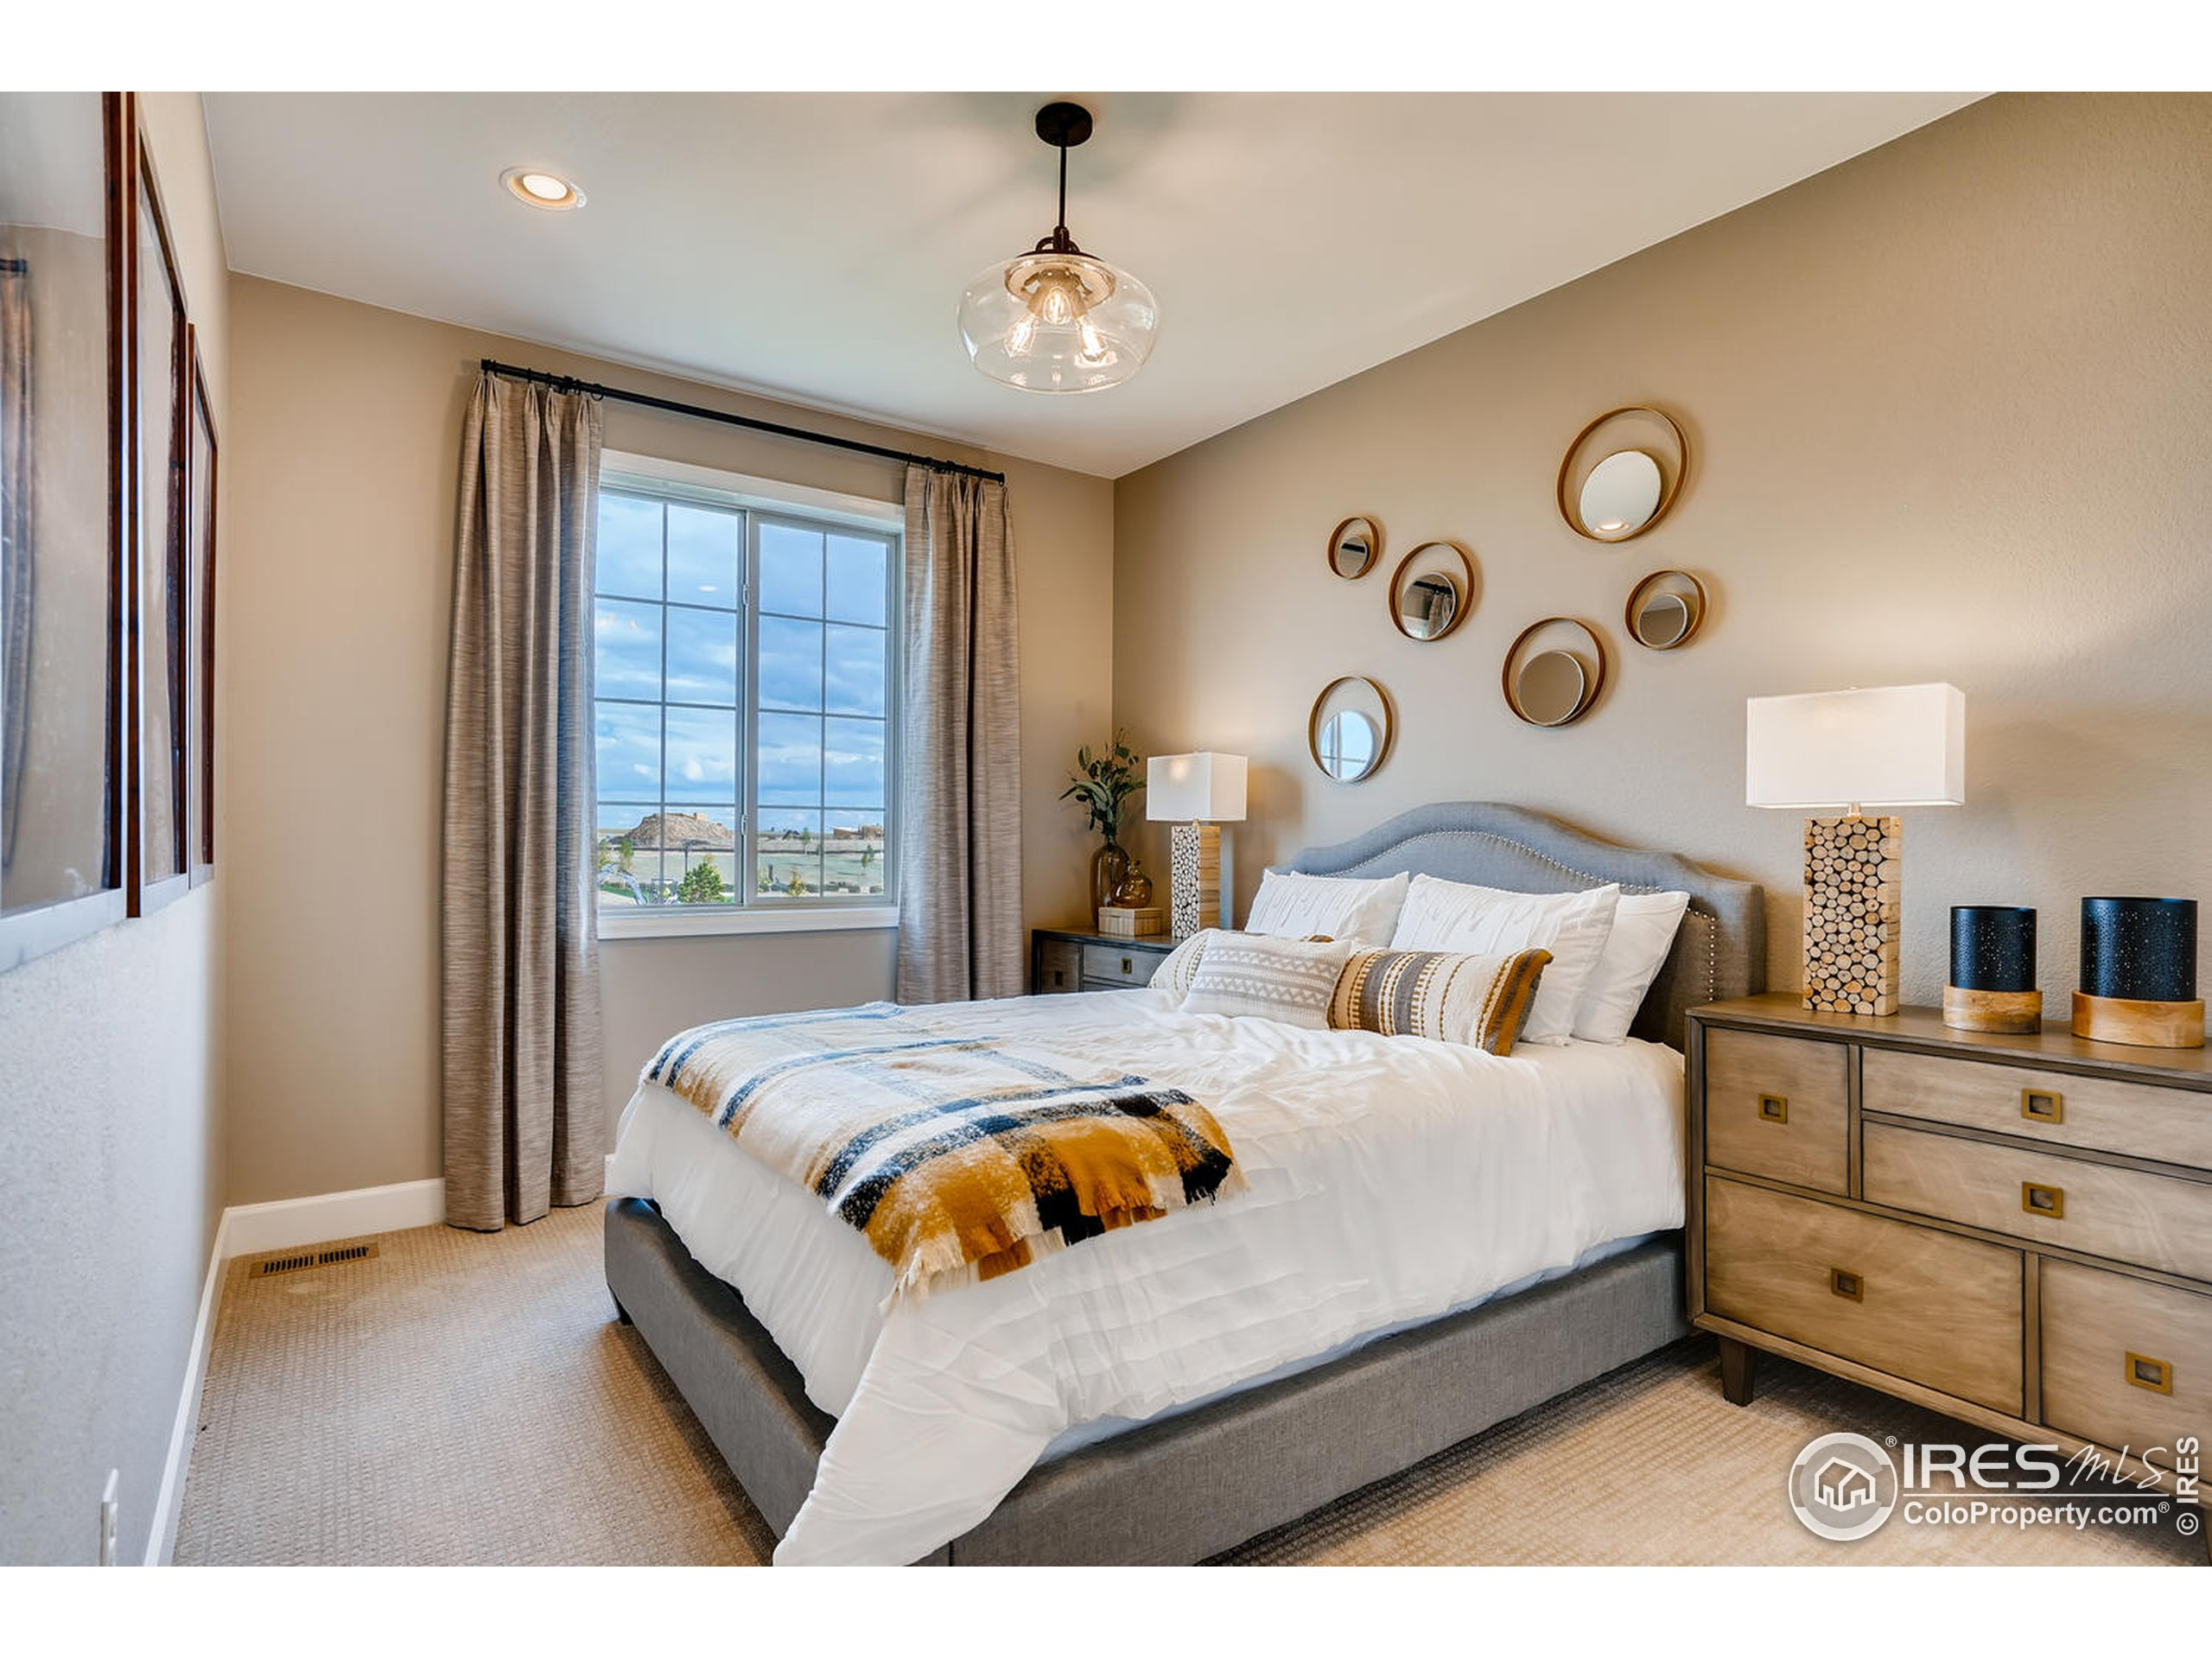 PHOTOS OF MODEL HOME. NOT OF ACTUAL HOME.